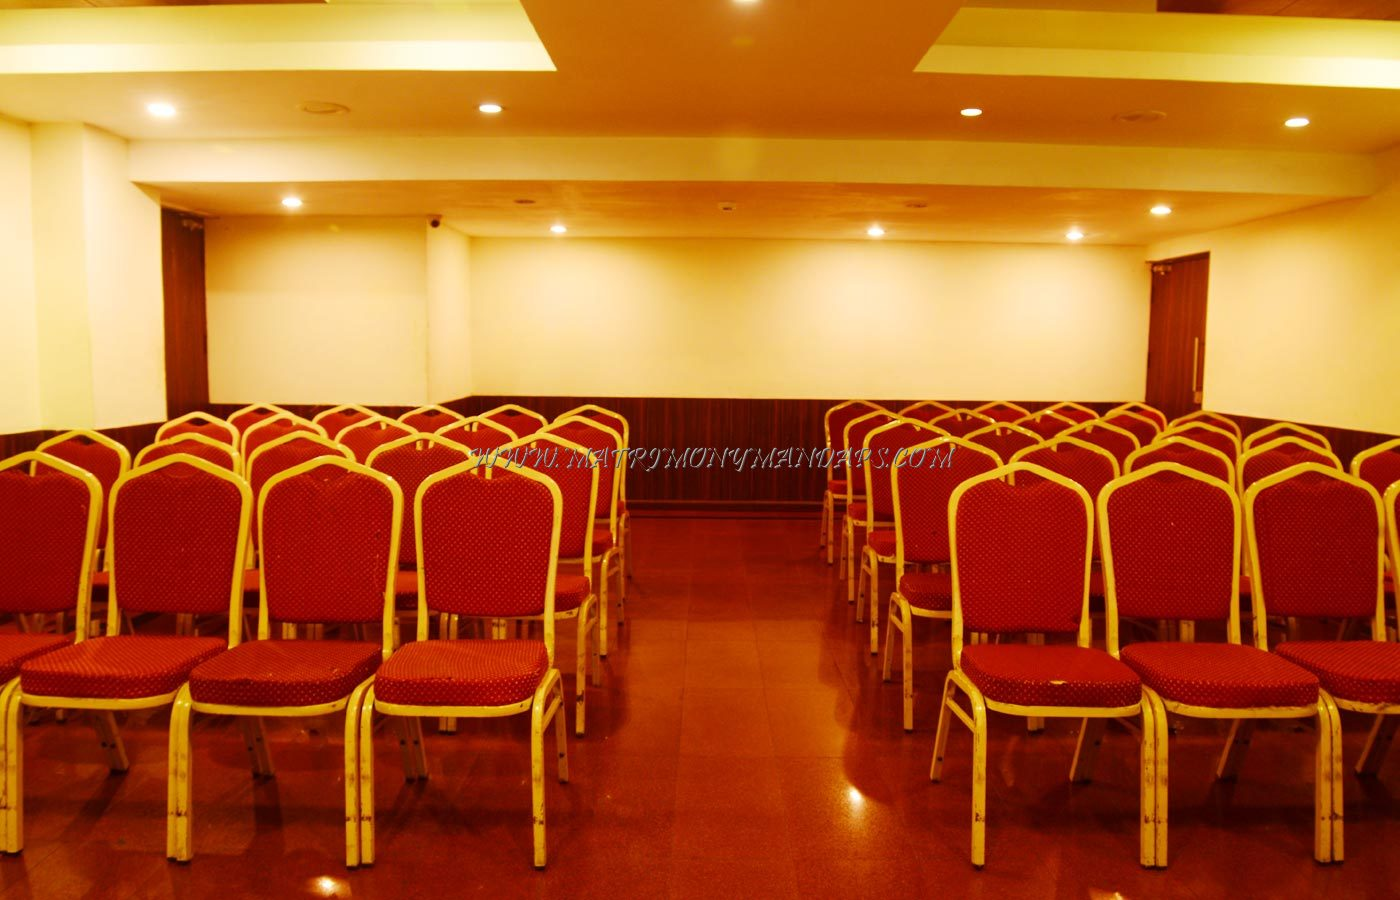 Find the availability of the Simsan Hotel (A/C) in Koyambedu, Chennai and avail special offers